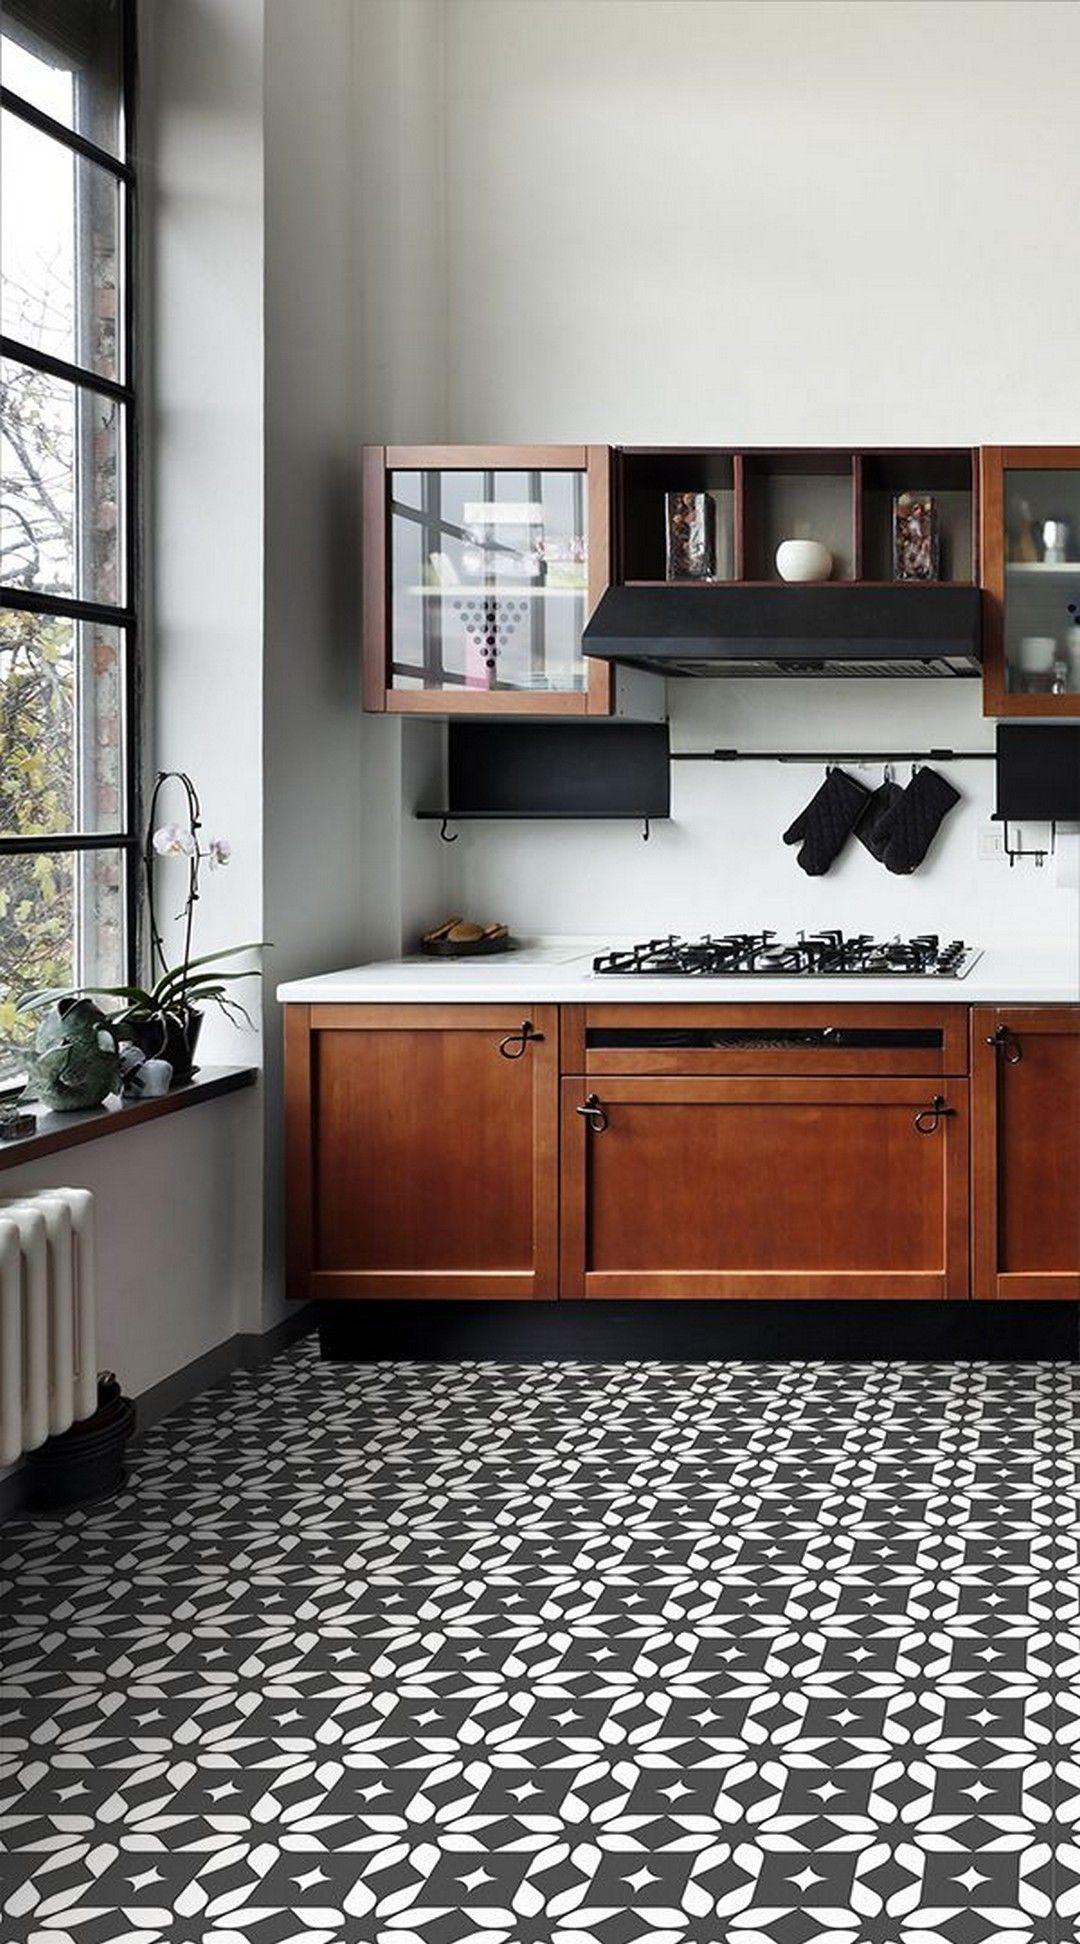 Modern Flooring Ideas To Give Your Kitchen A New Look Modern